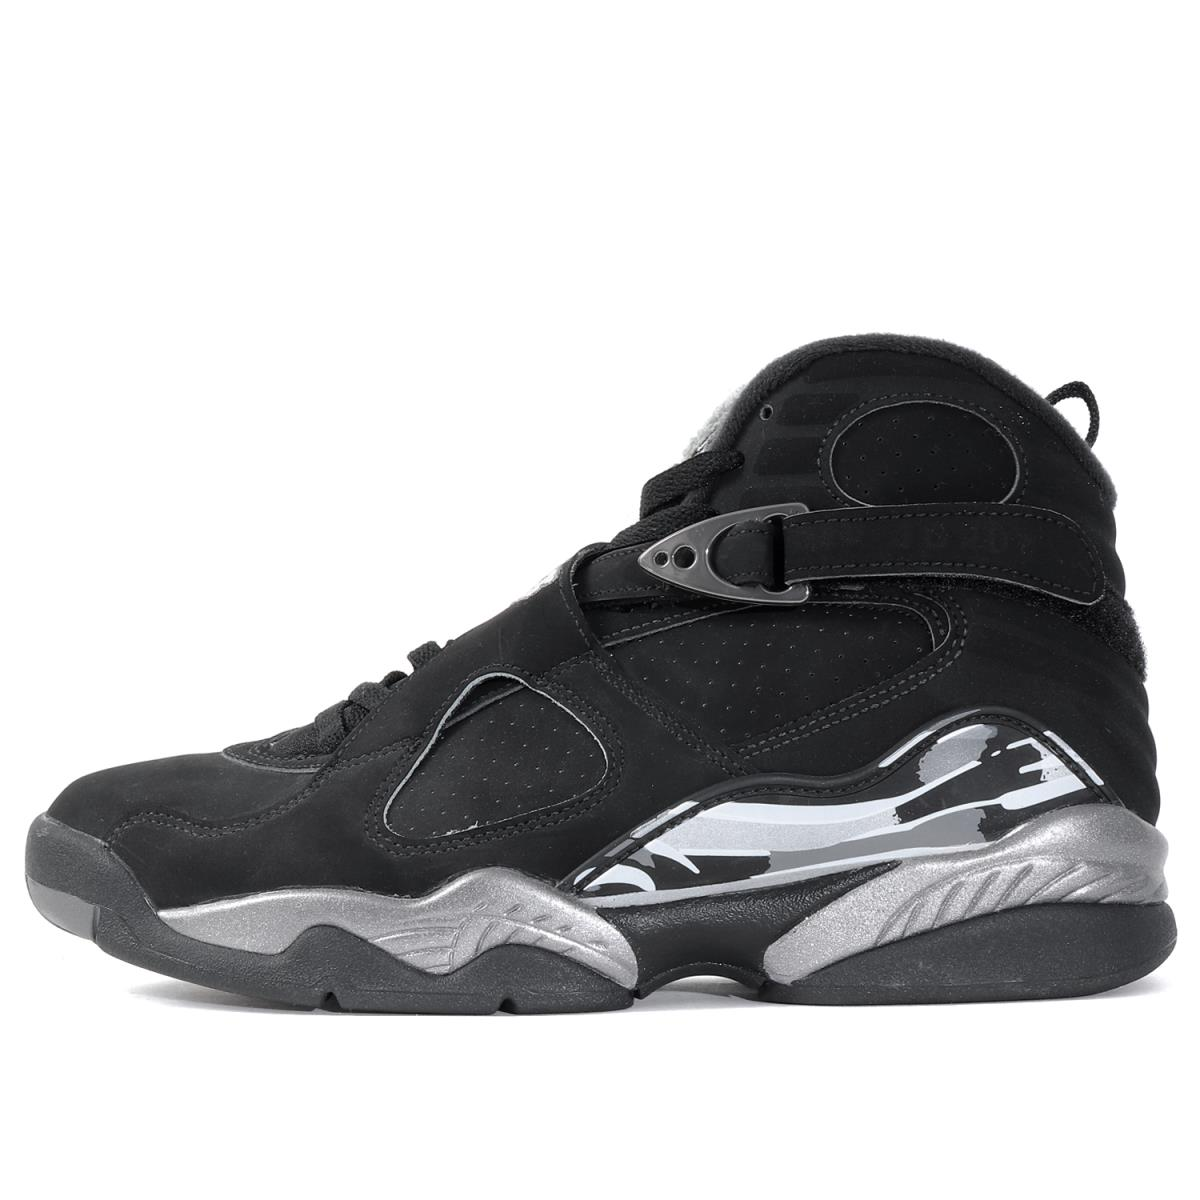 d66526f65c2 ... uk nike nike air jordan 8 retro chrome 305381 003 black x chrome  us826cm fdb77 eef7c